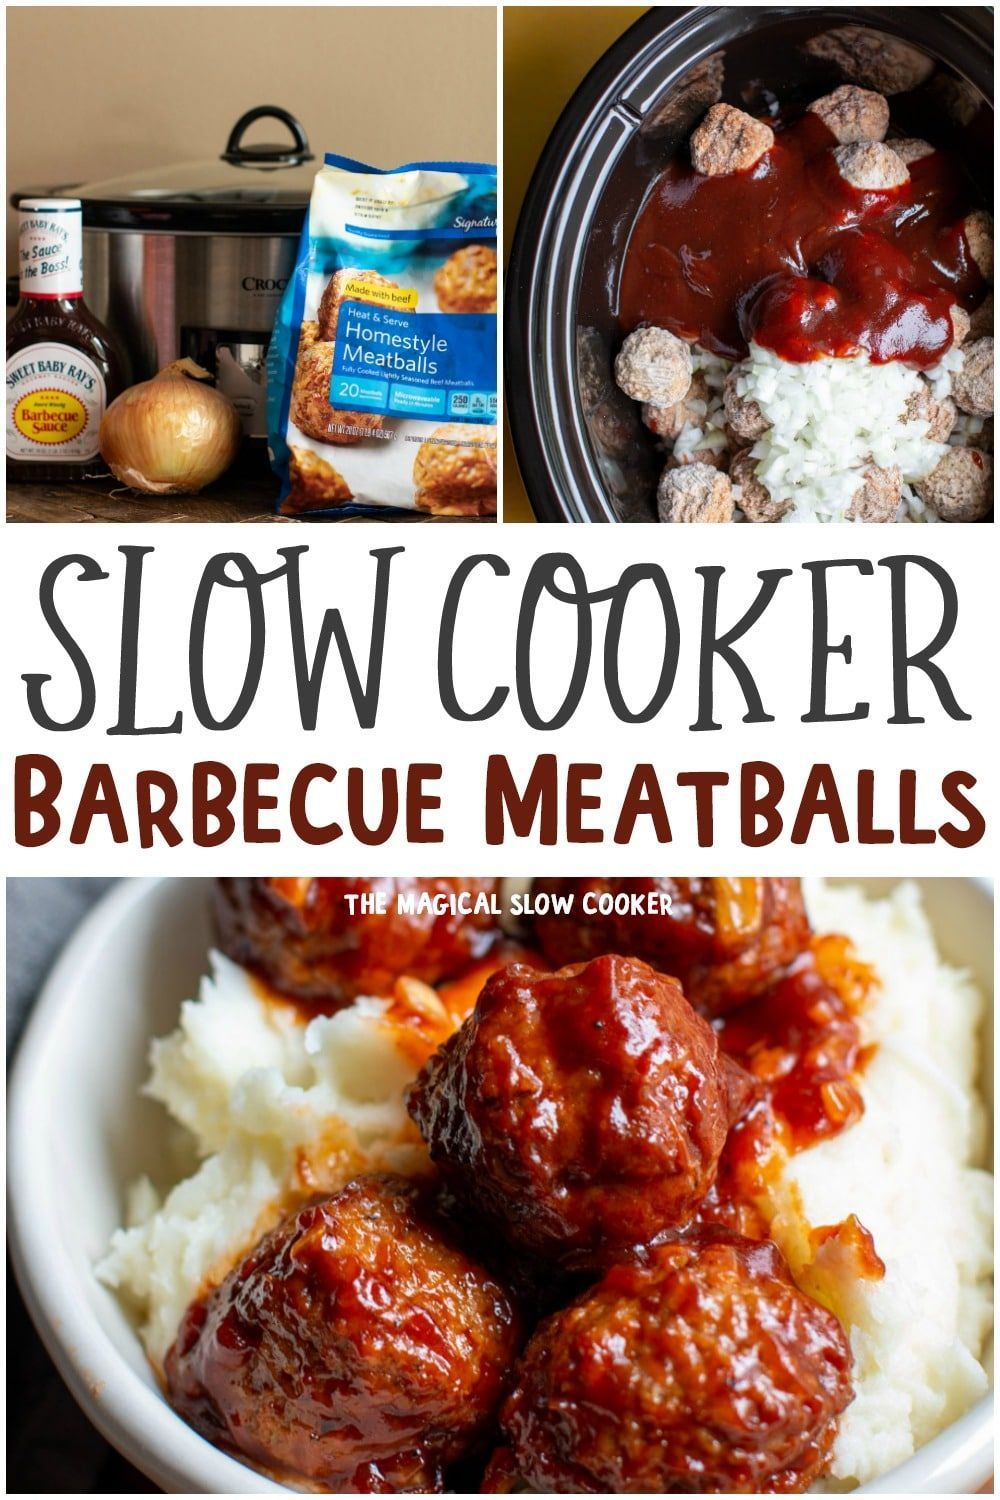 Slow Cooker Barbecue Meatballs images